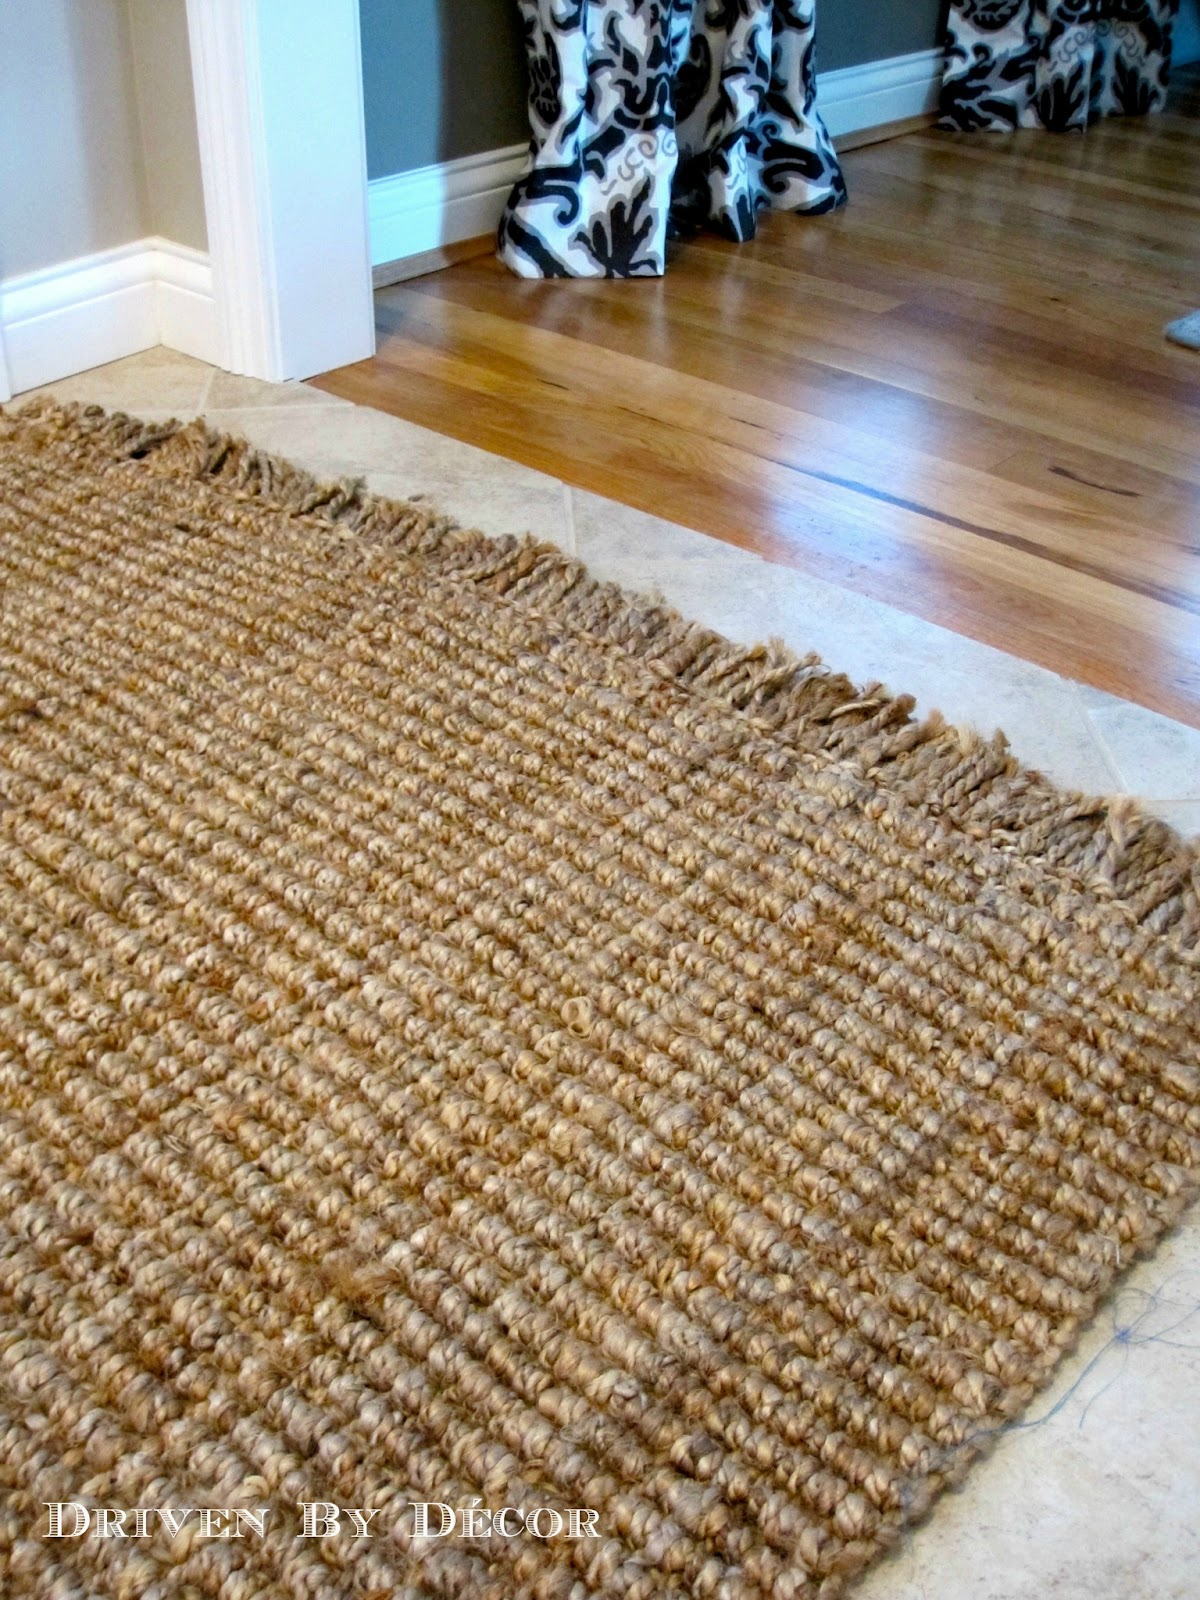 A Great line Source for Inexpensive Area Rugs